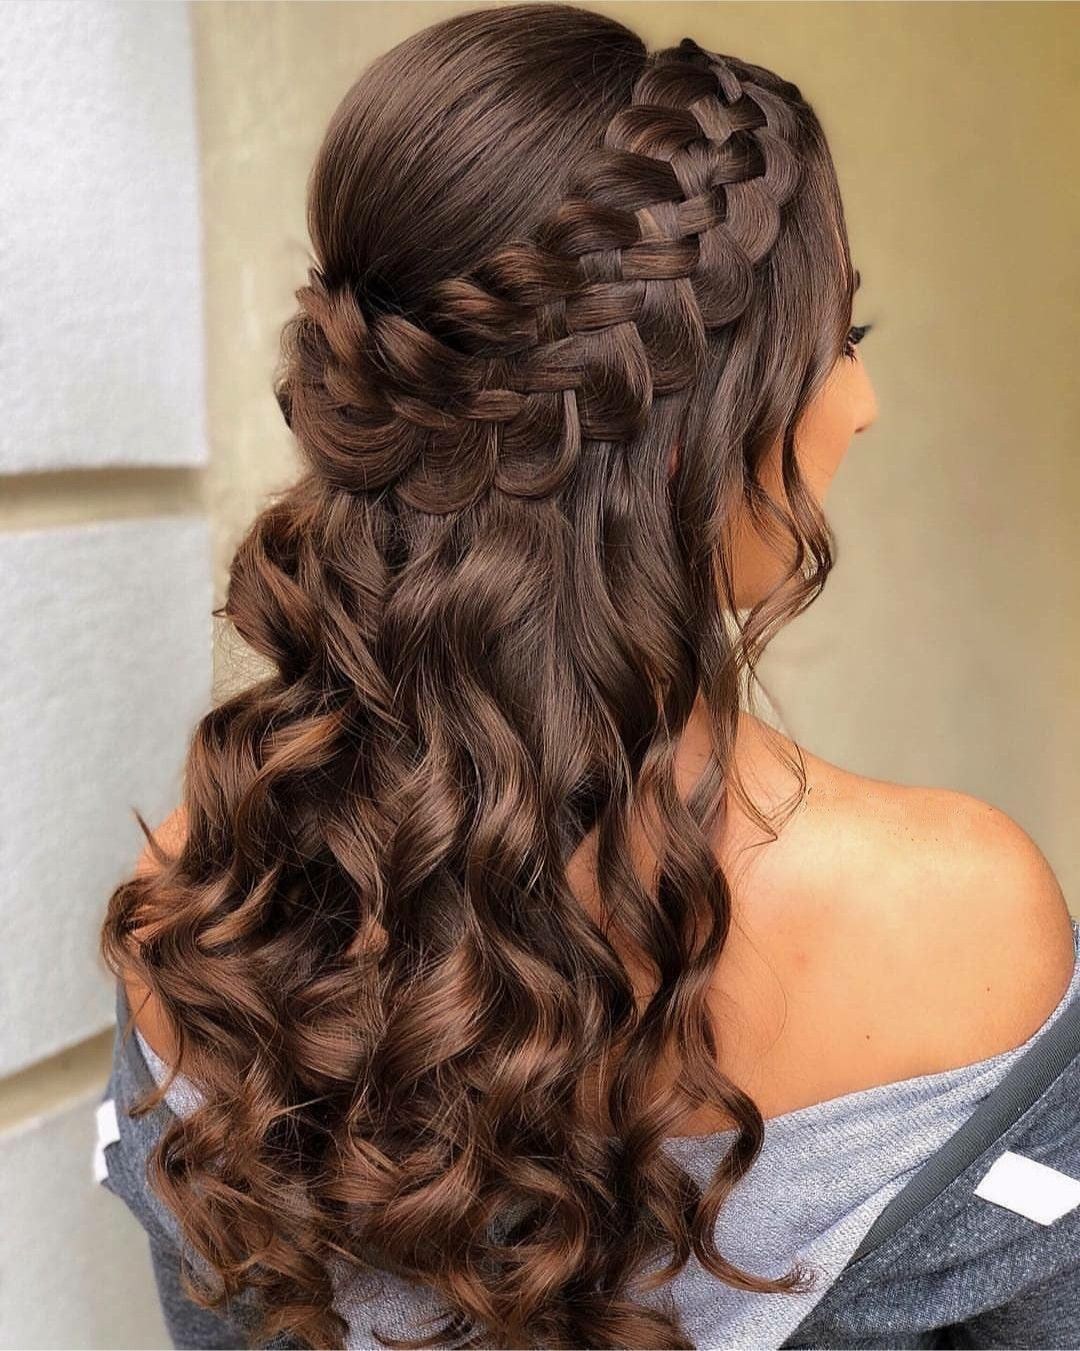 Pin By Kamryn Moss On Prom Hair In 2019 Hair Styles